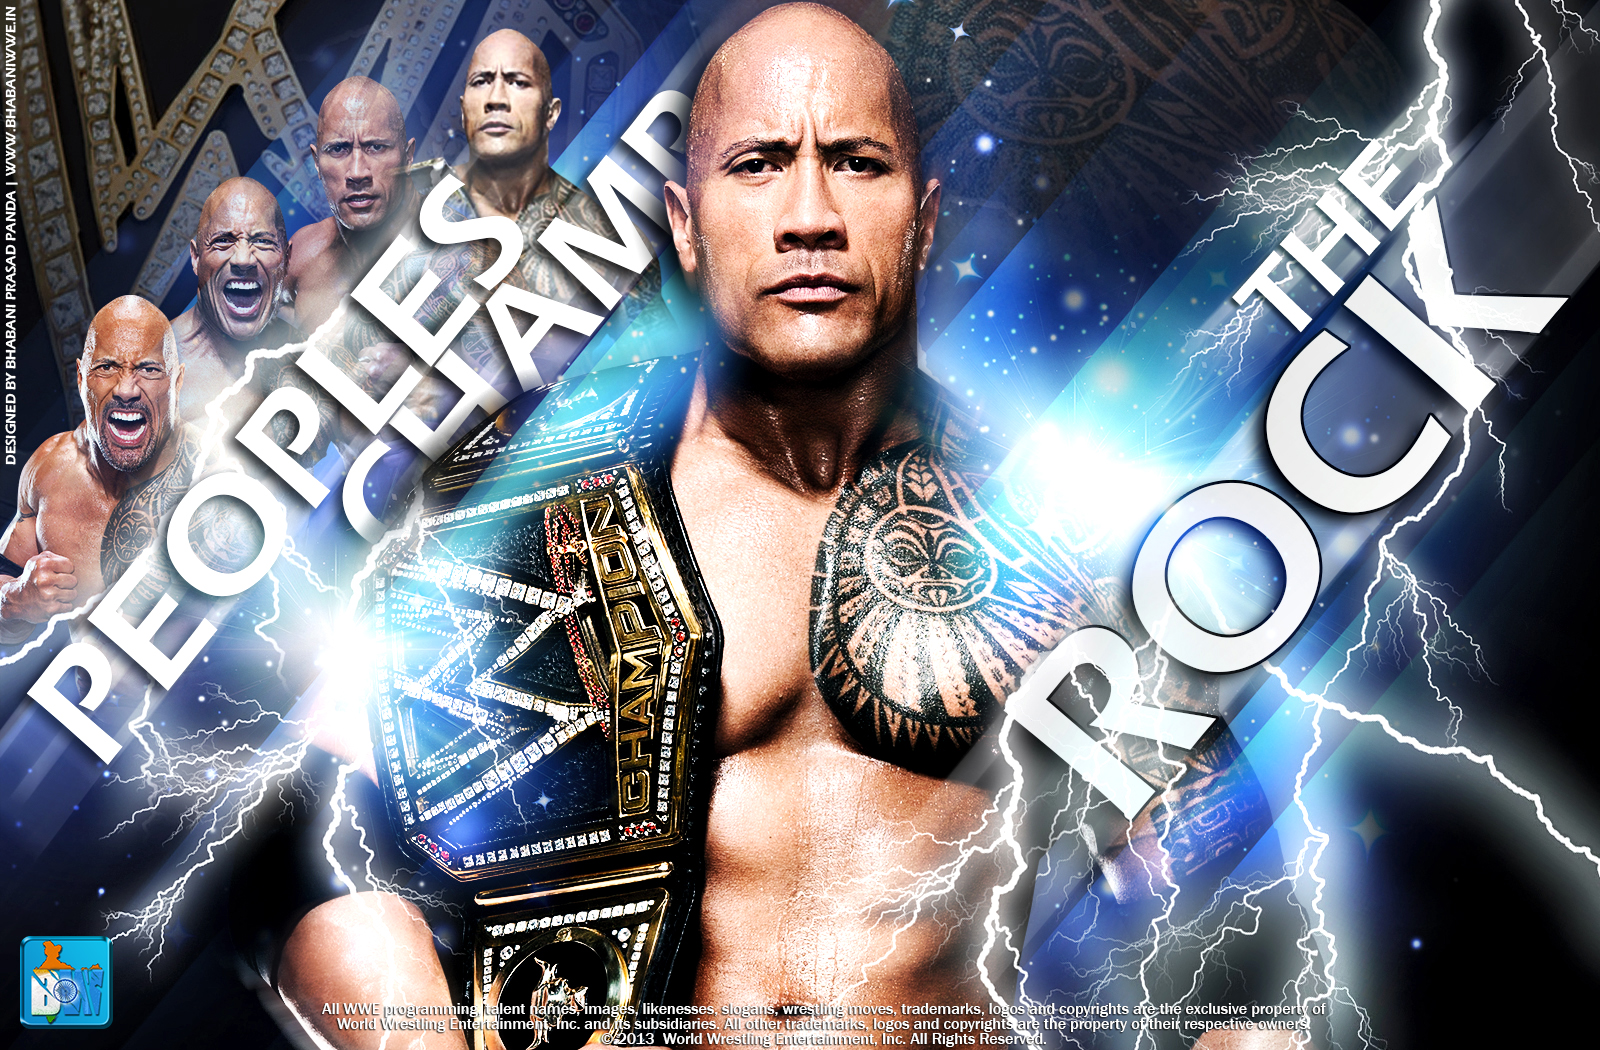 Wonderful Wallpapers: The Rock HD Wallpapers 2013-2014